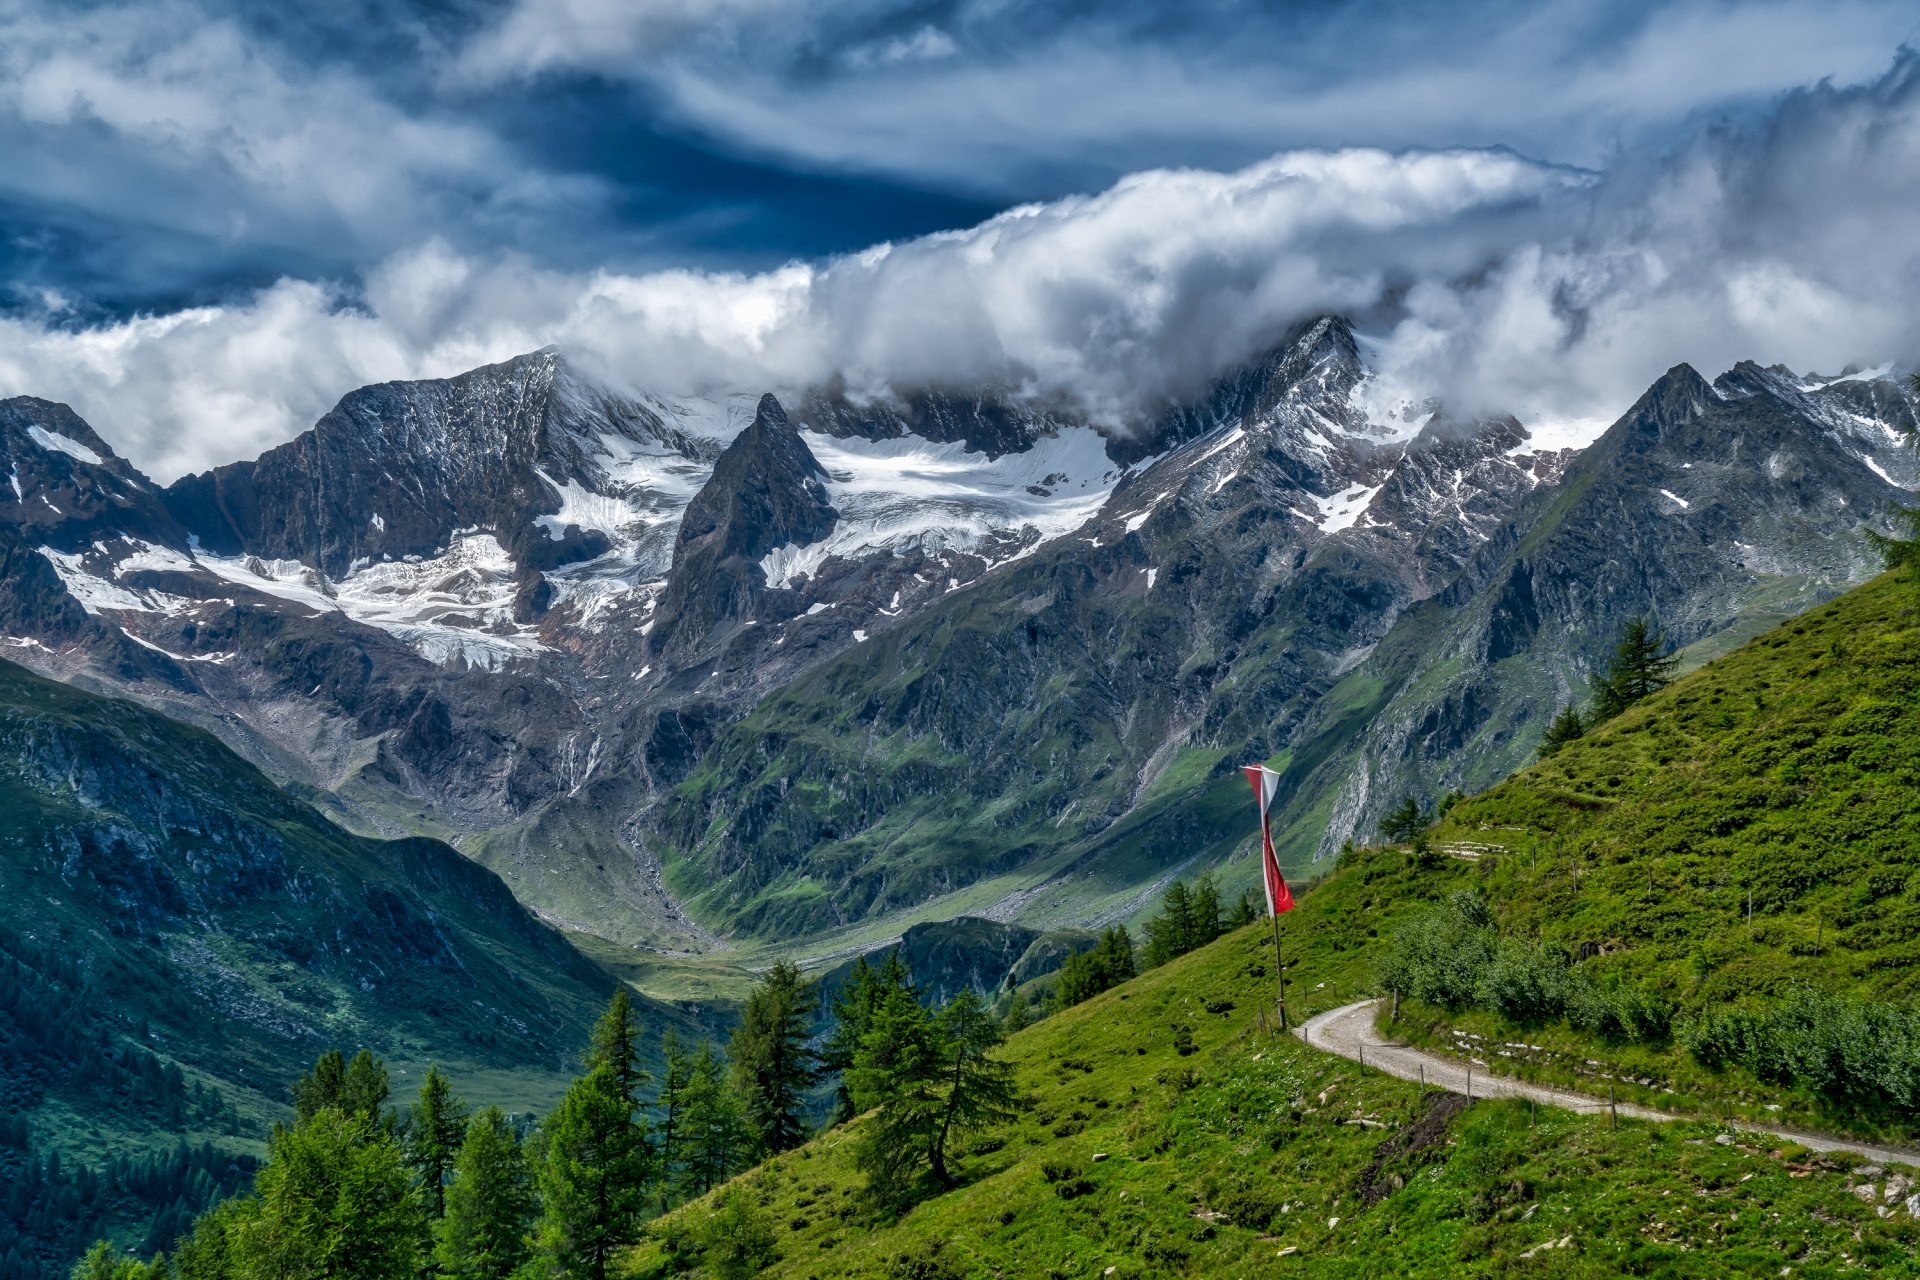 Clouds over the swiss alps hd wallpaper background image - Swiss alps wallpaper ...